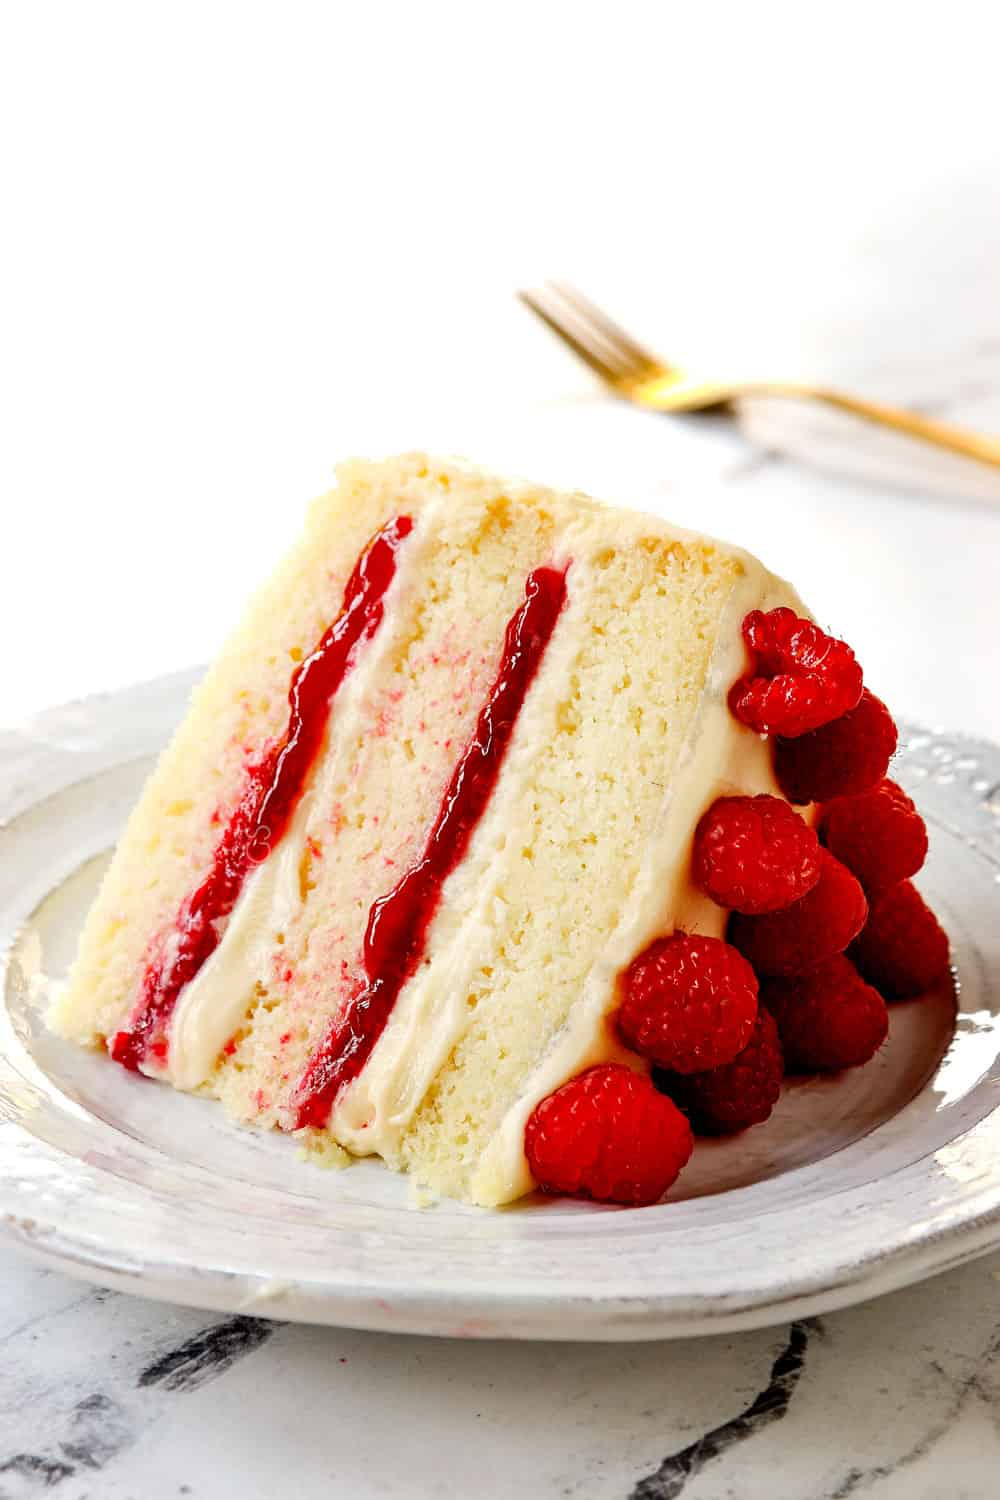 a slice of white chocolate raspberry cake showing how tender it is